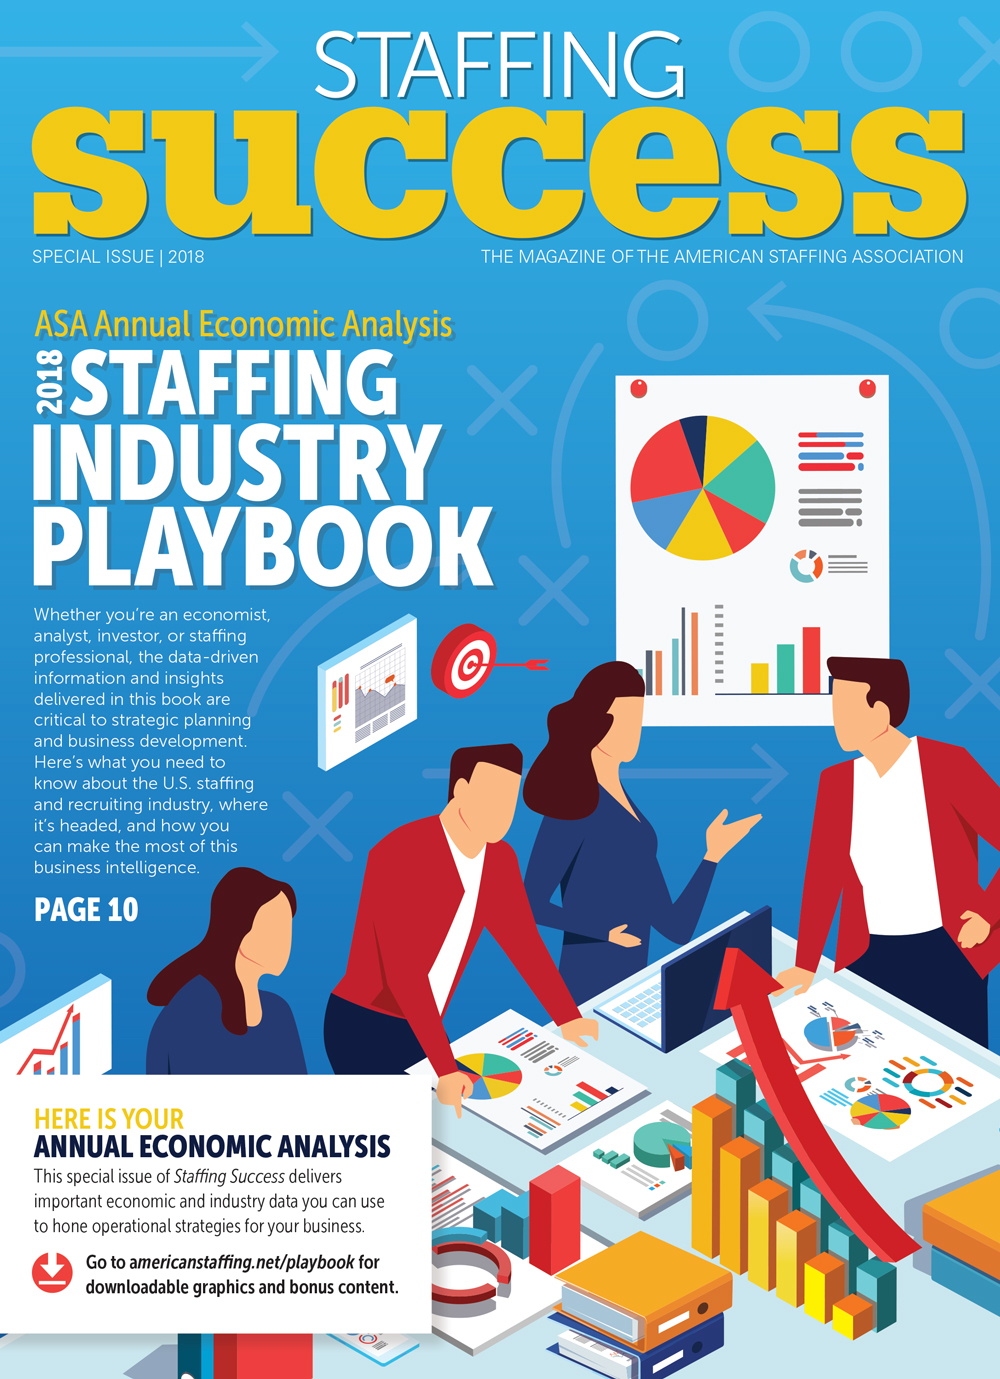 2018 Playbook